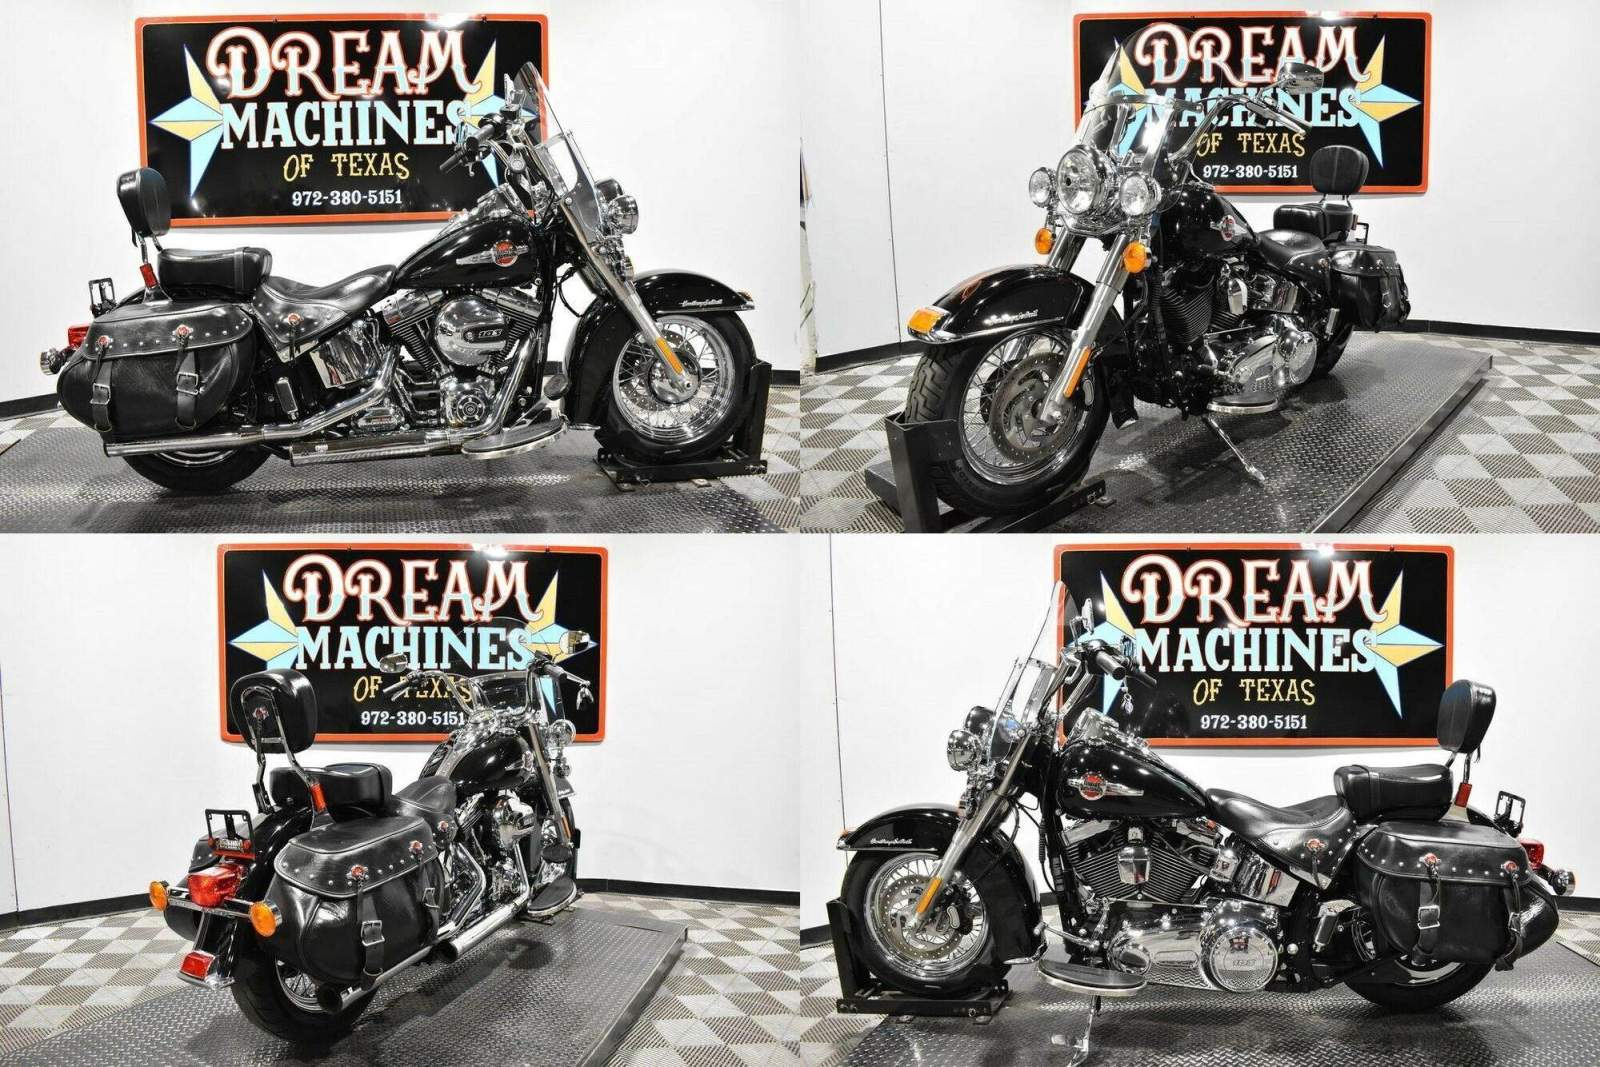 2017 Harley-Davidson FLSTC - Heritage Softail Classic Black used for sale near me